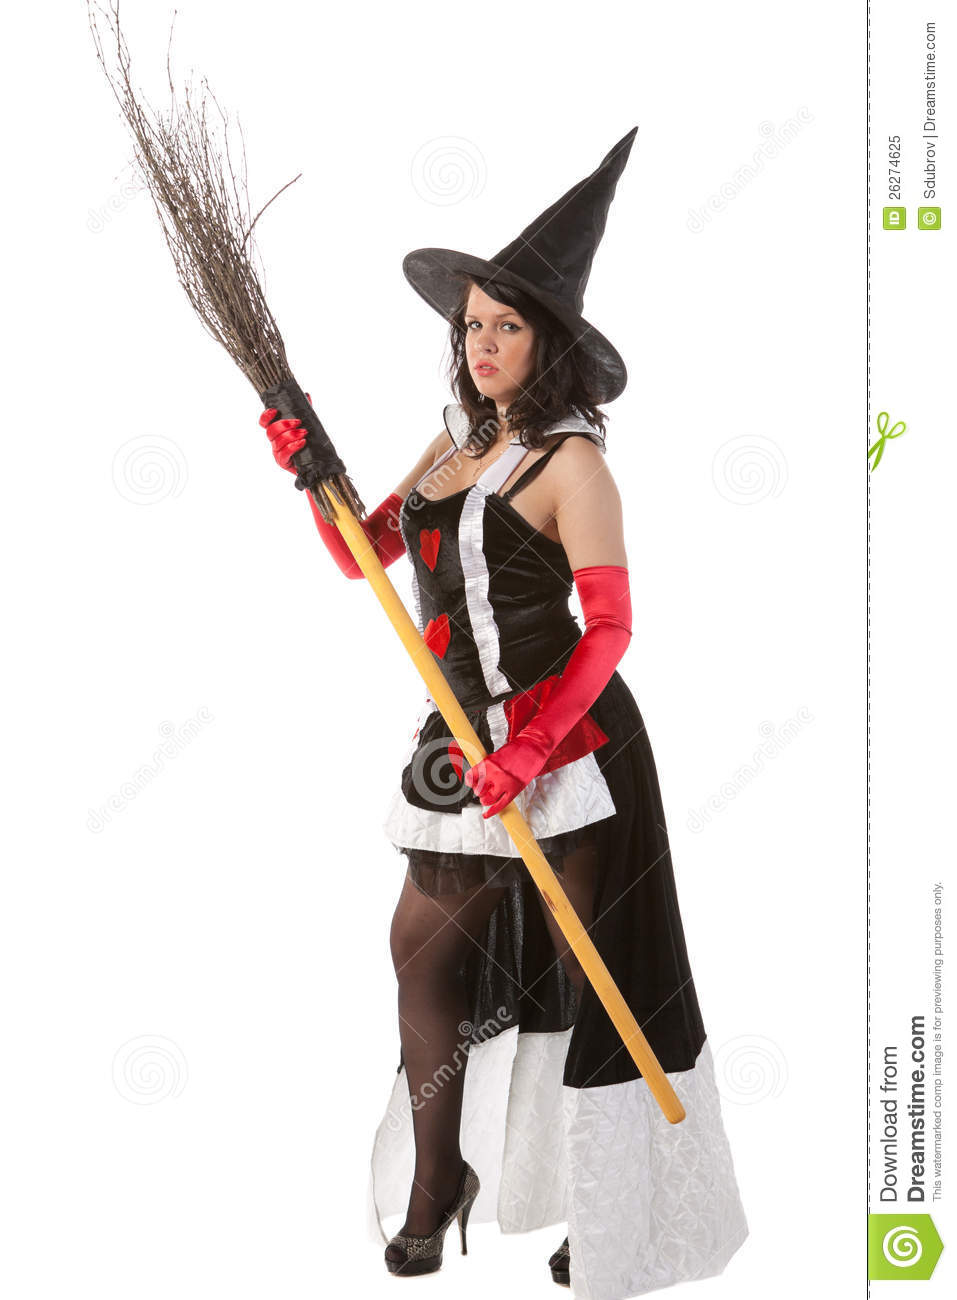 Girl In Halloween Witch Costume With Broom Royalty Free Stock ...